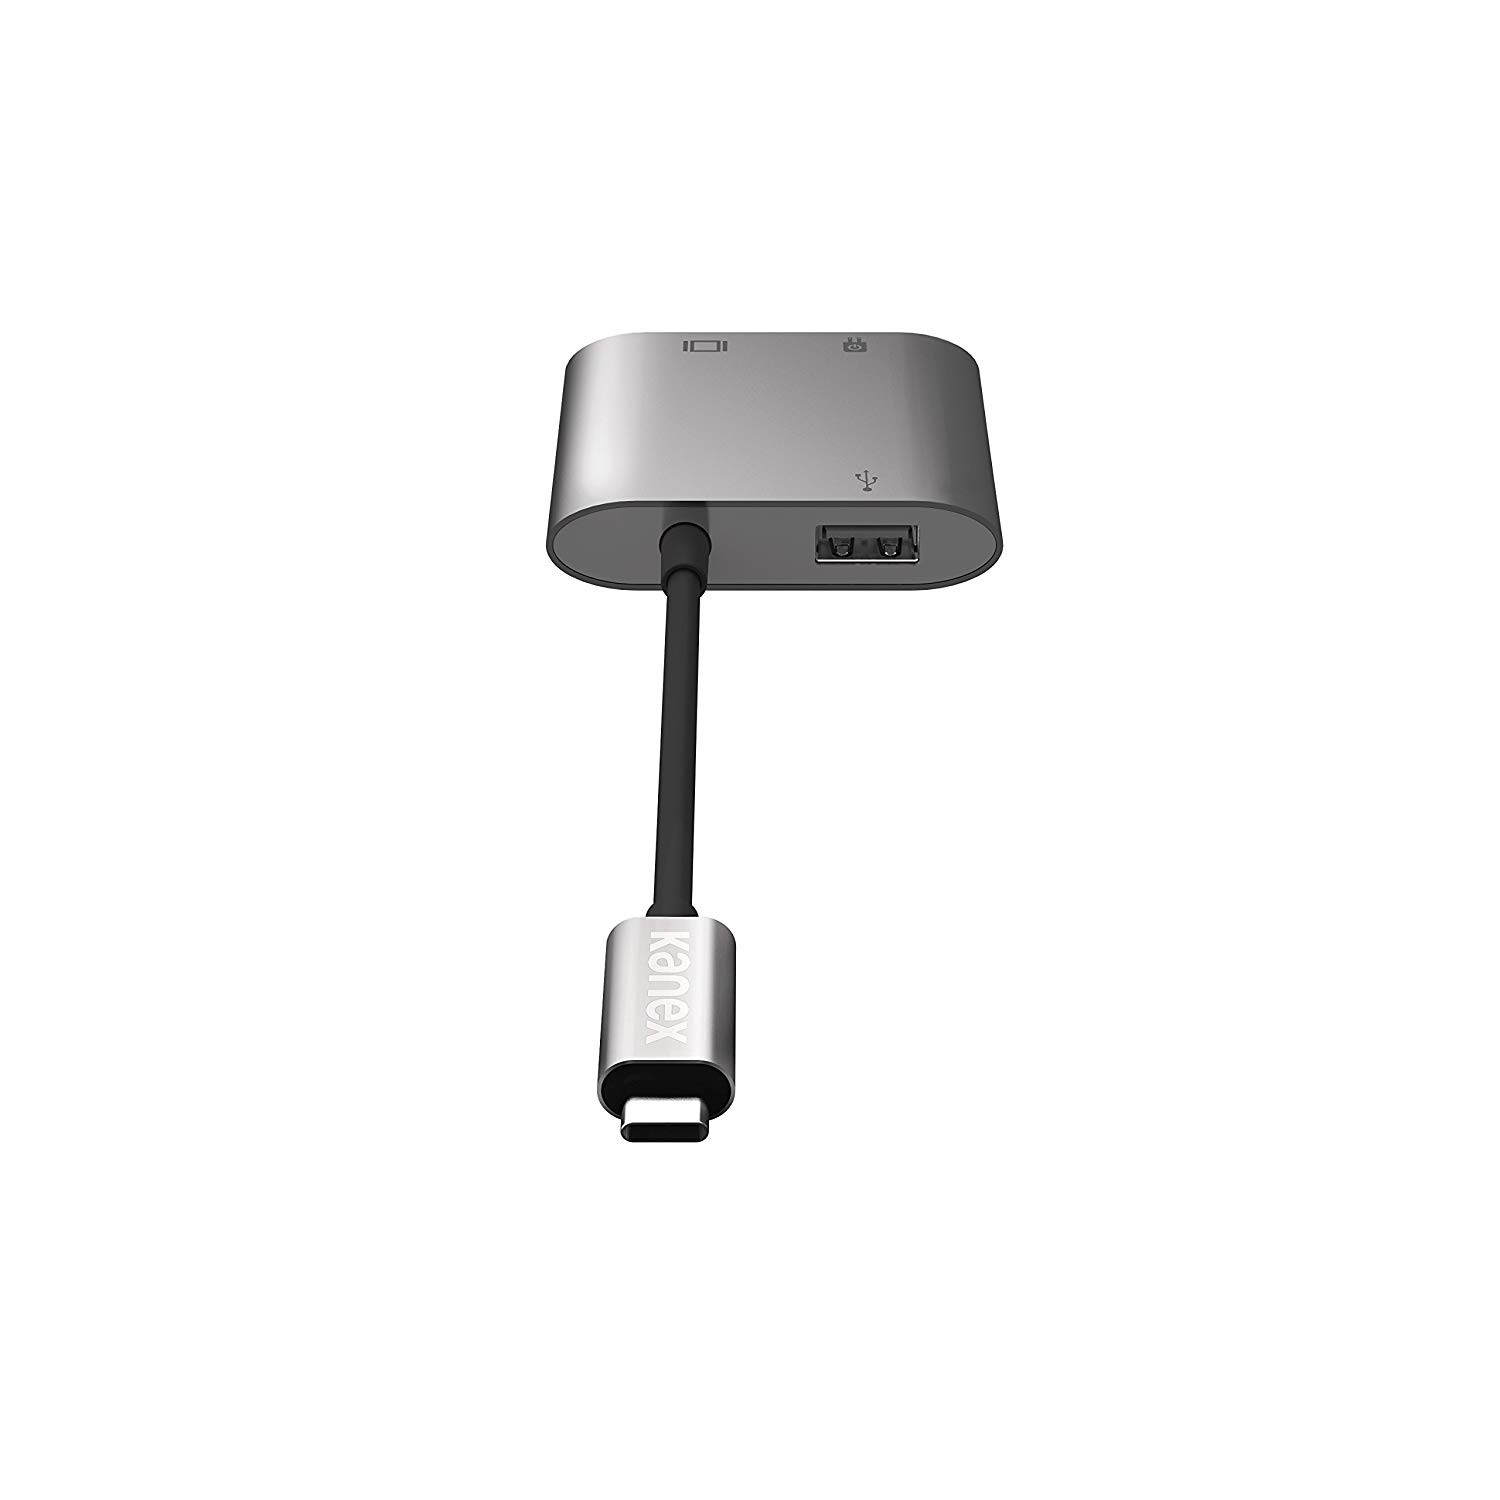 Kanex USB-C Multimedia 4K HDMI USB Charging Adapter for Macbook with Pass Thru Charging, K181-1041-SG4i